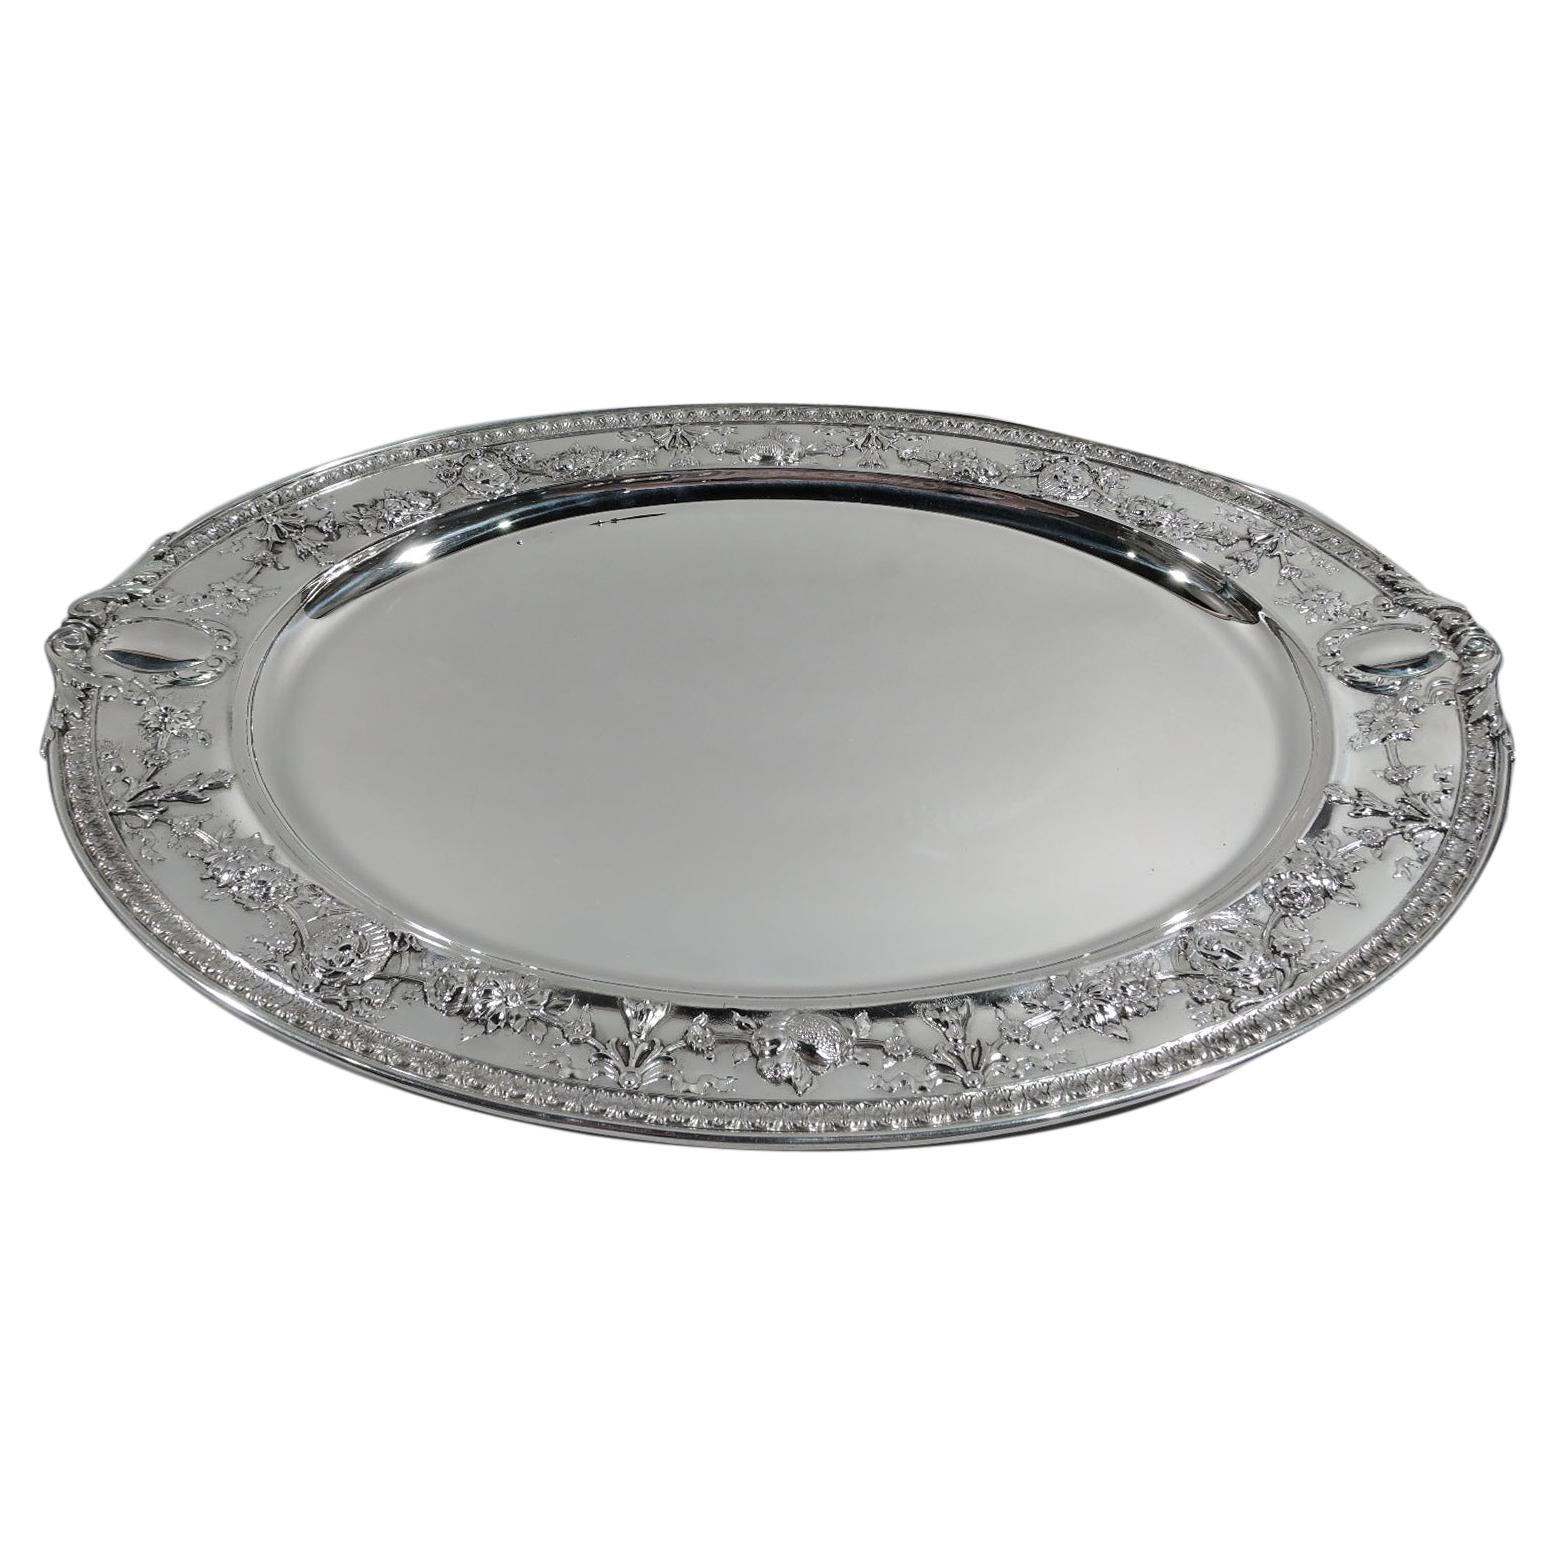 Large and Heavy Antique Gorham Sterling Silver Serving Tray